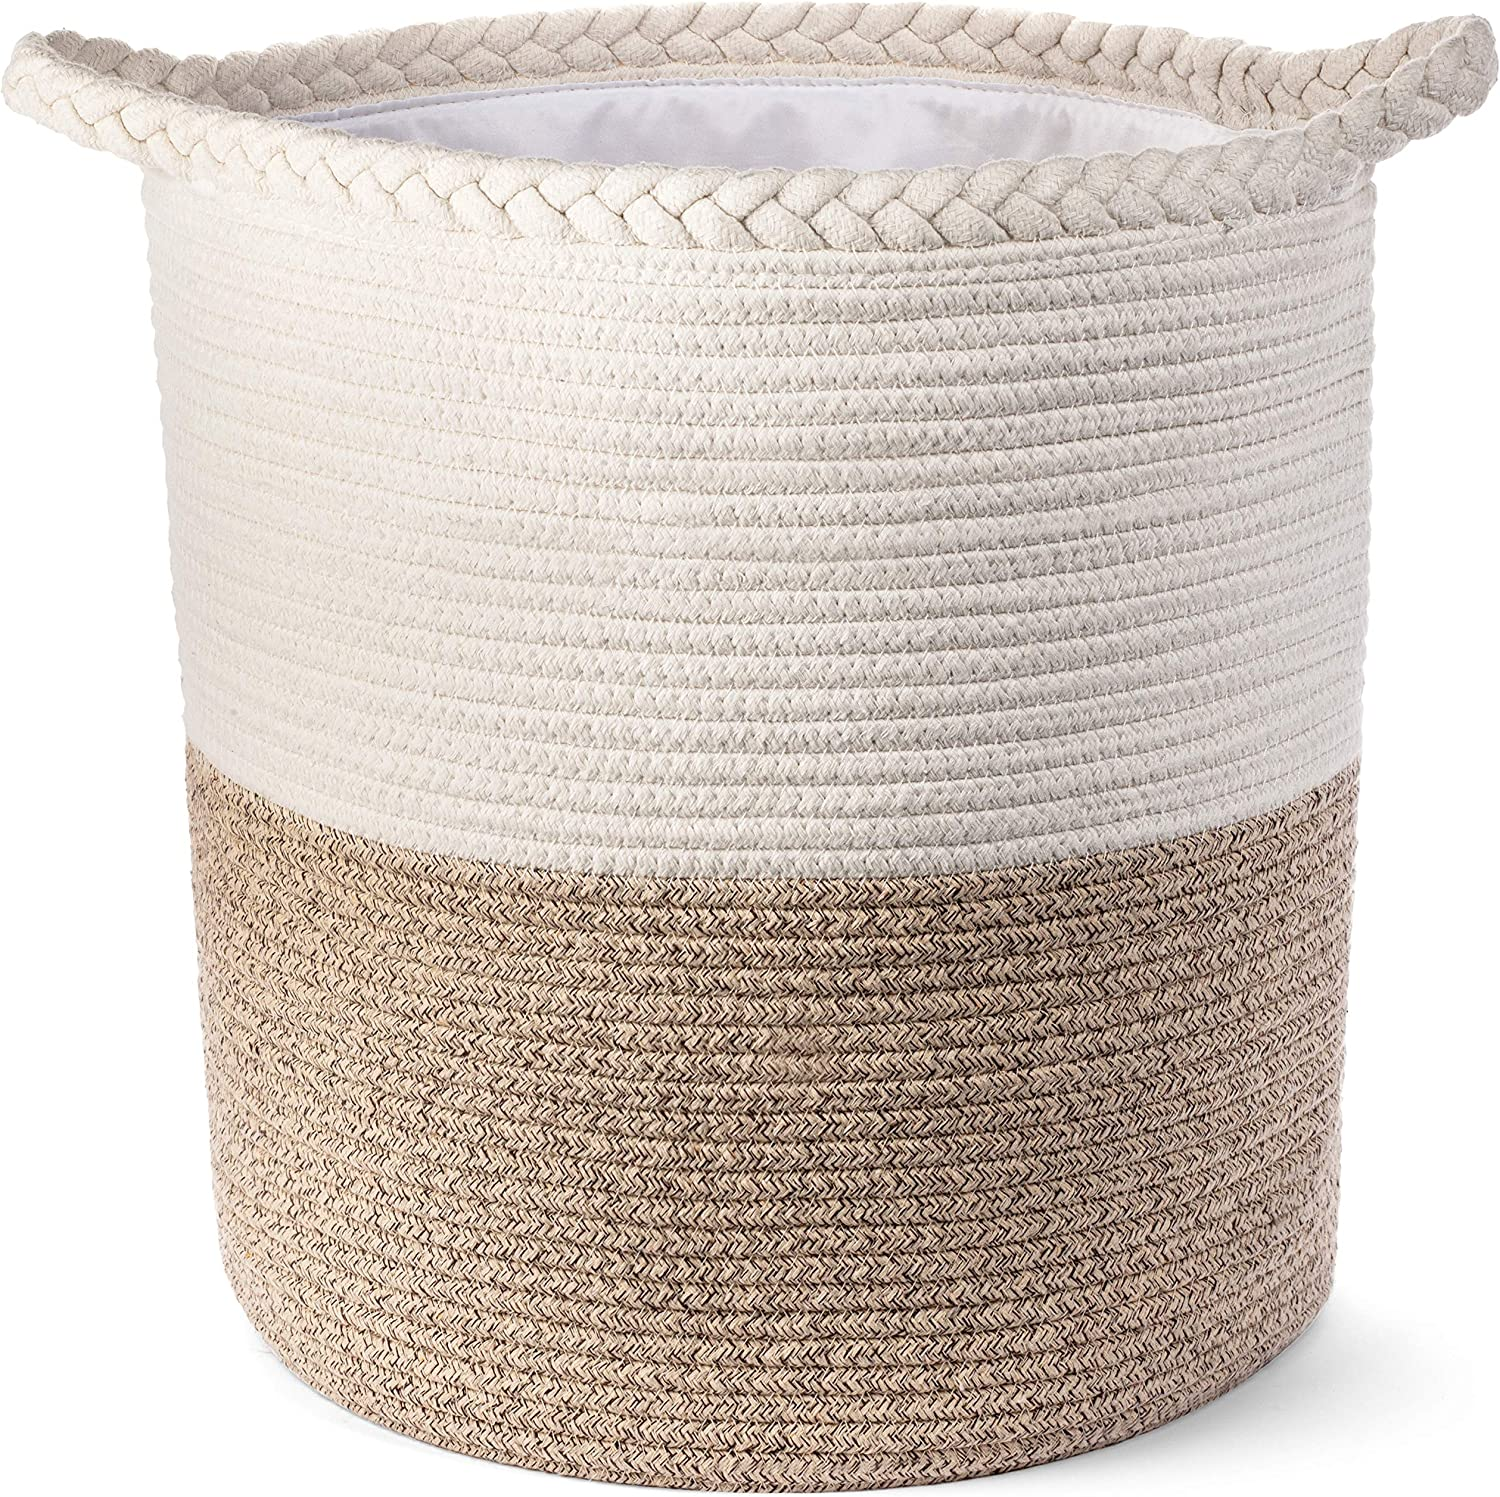 Blanket Storage Ranking TOP8 Basket with Long Clothes Ha Decorative Ranking TOP10 Handles